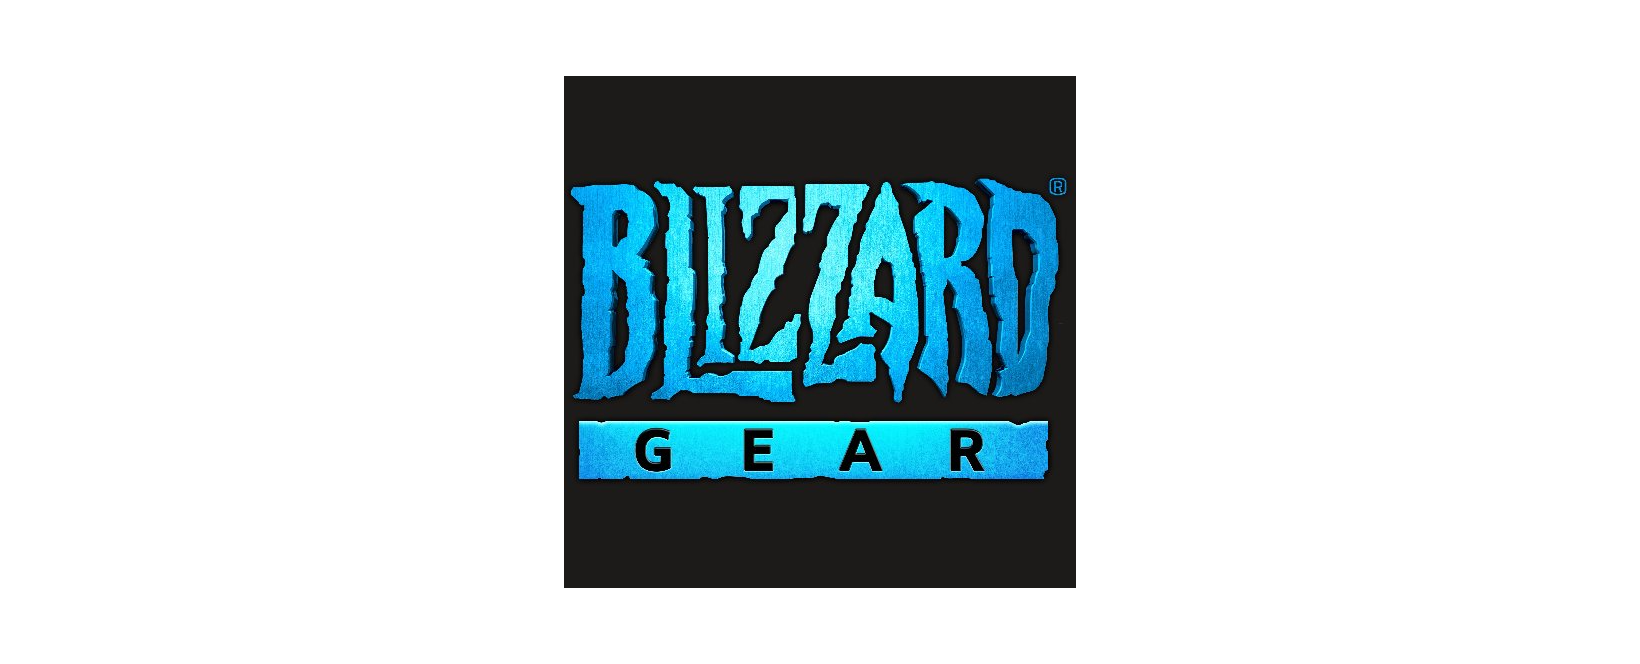 Blizzard Gear Store Coupon Code 2021